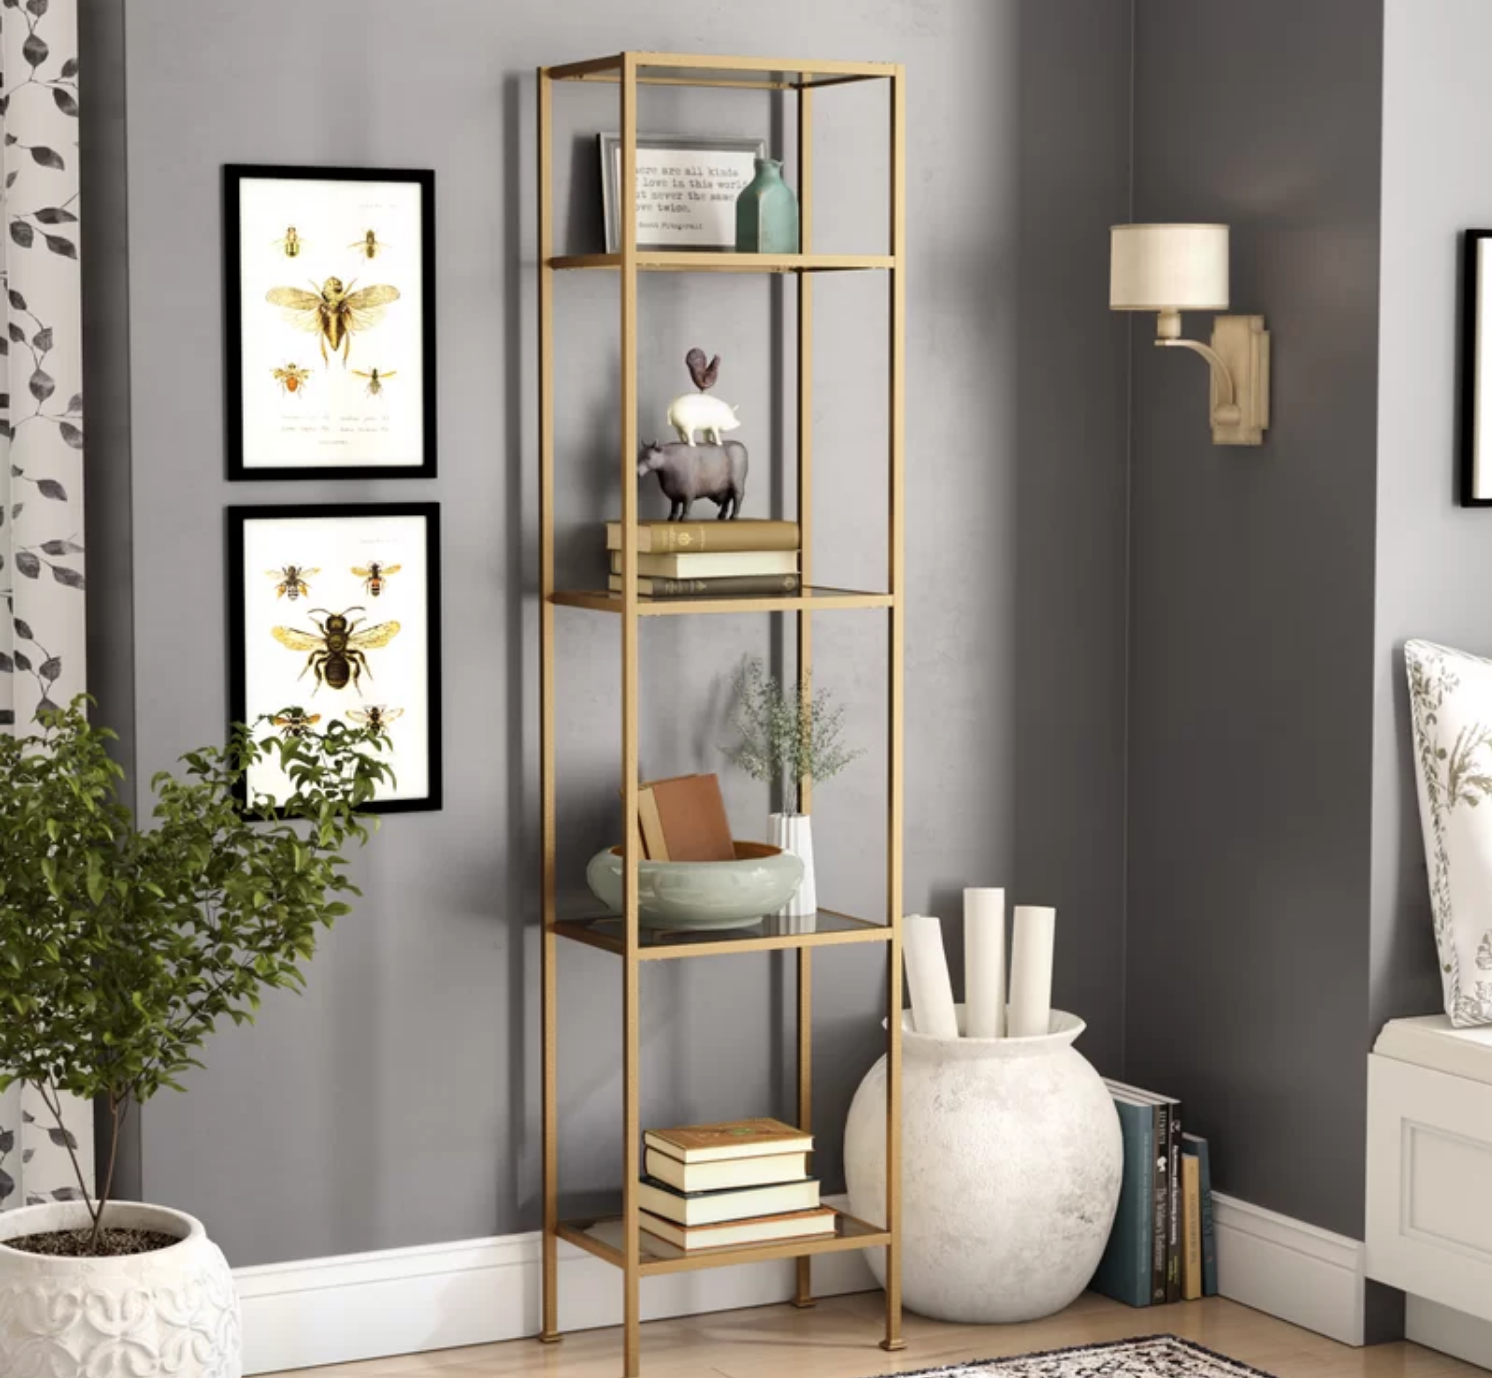 9 Things Everyone Moving Into a Studio Apartment Should Add to Their Shopping List